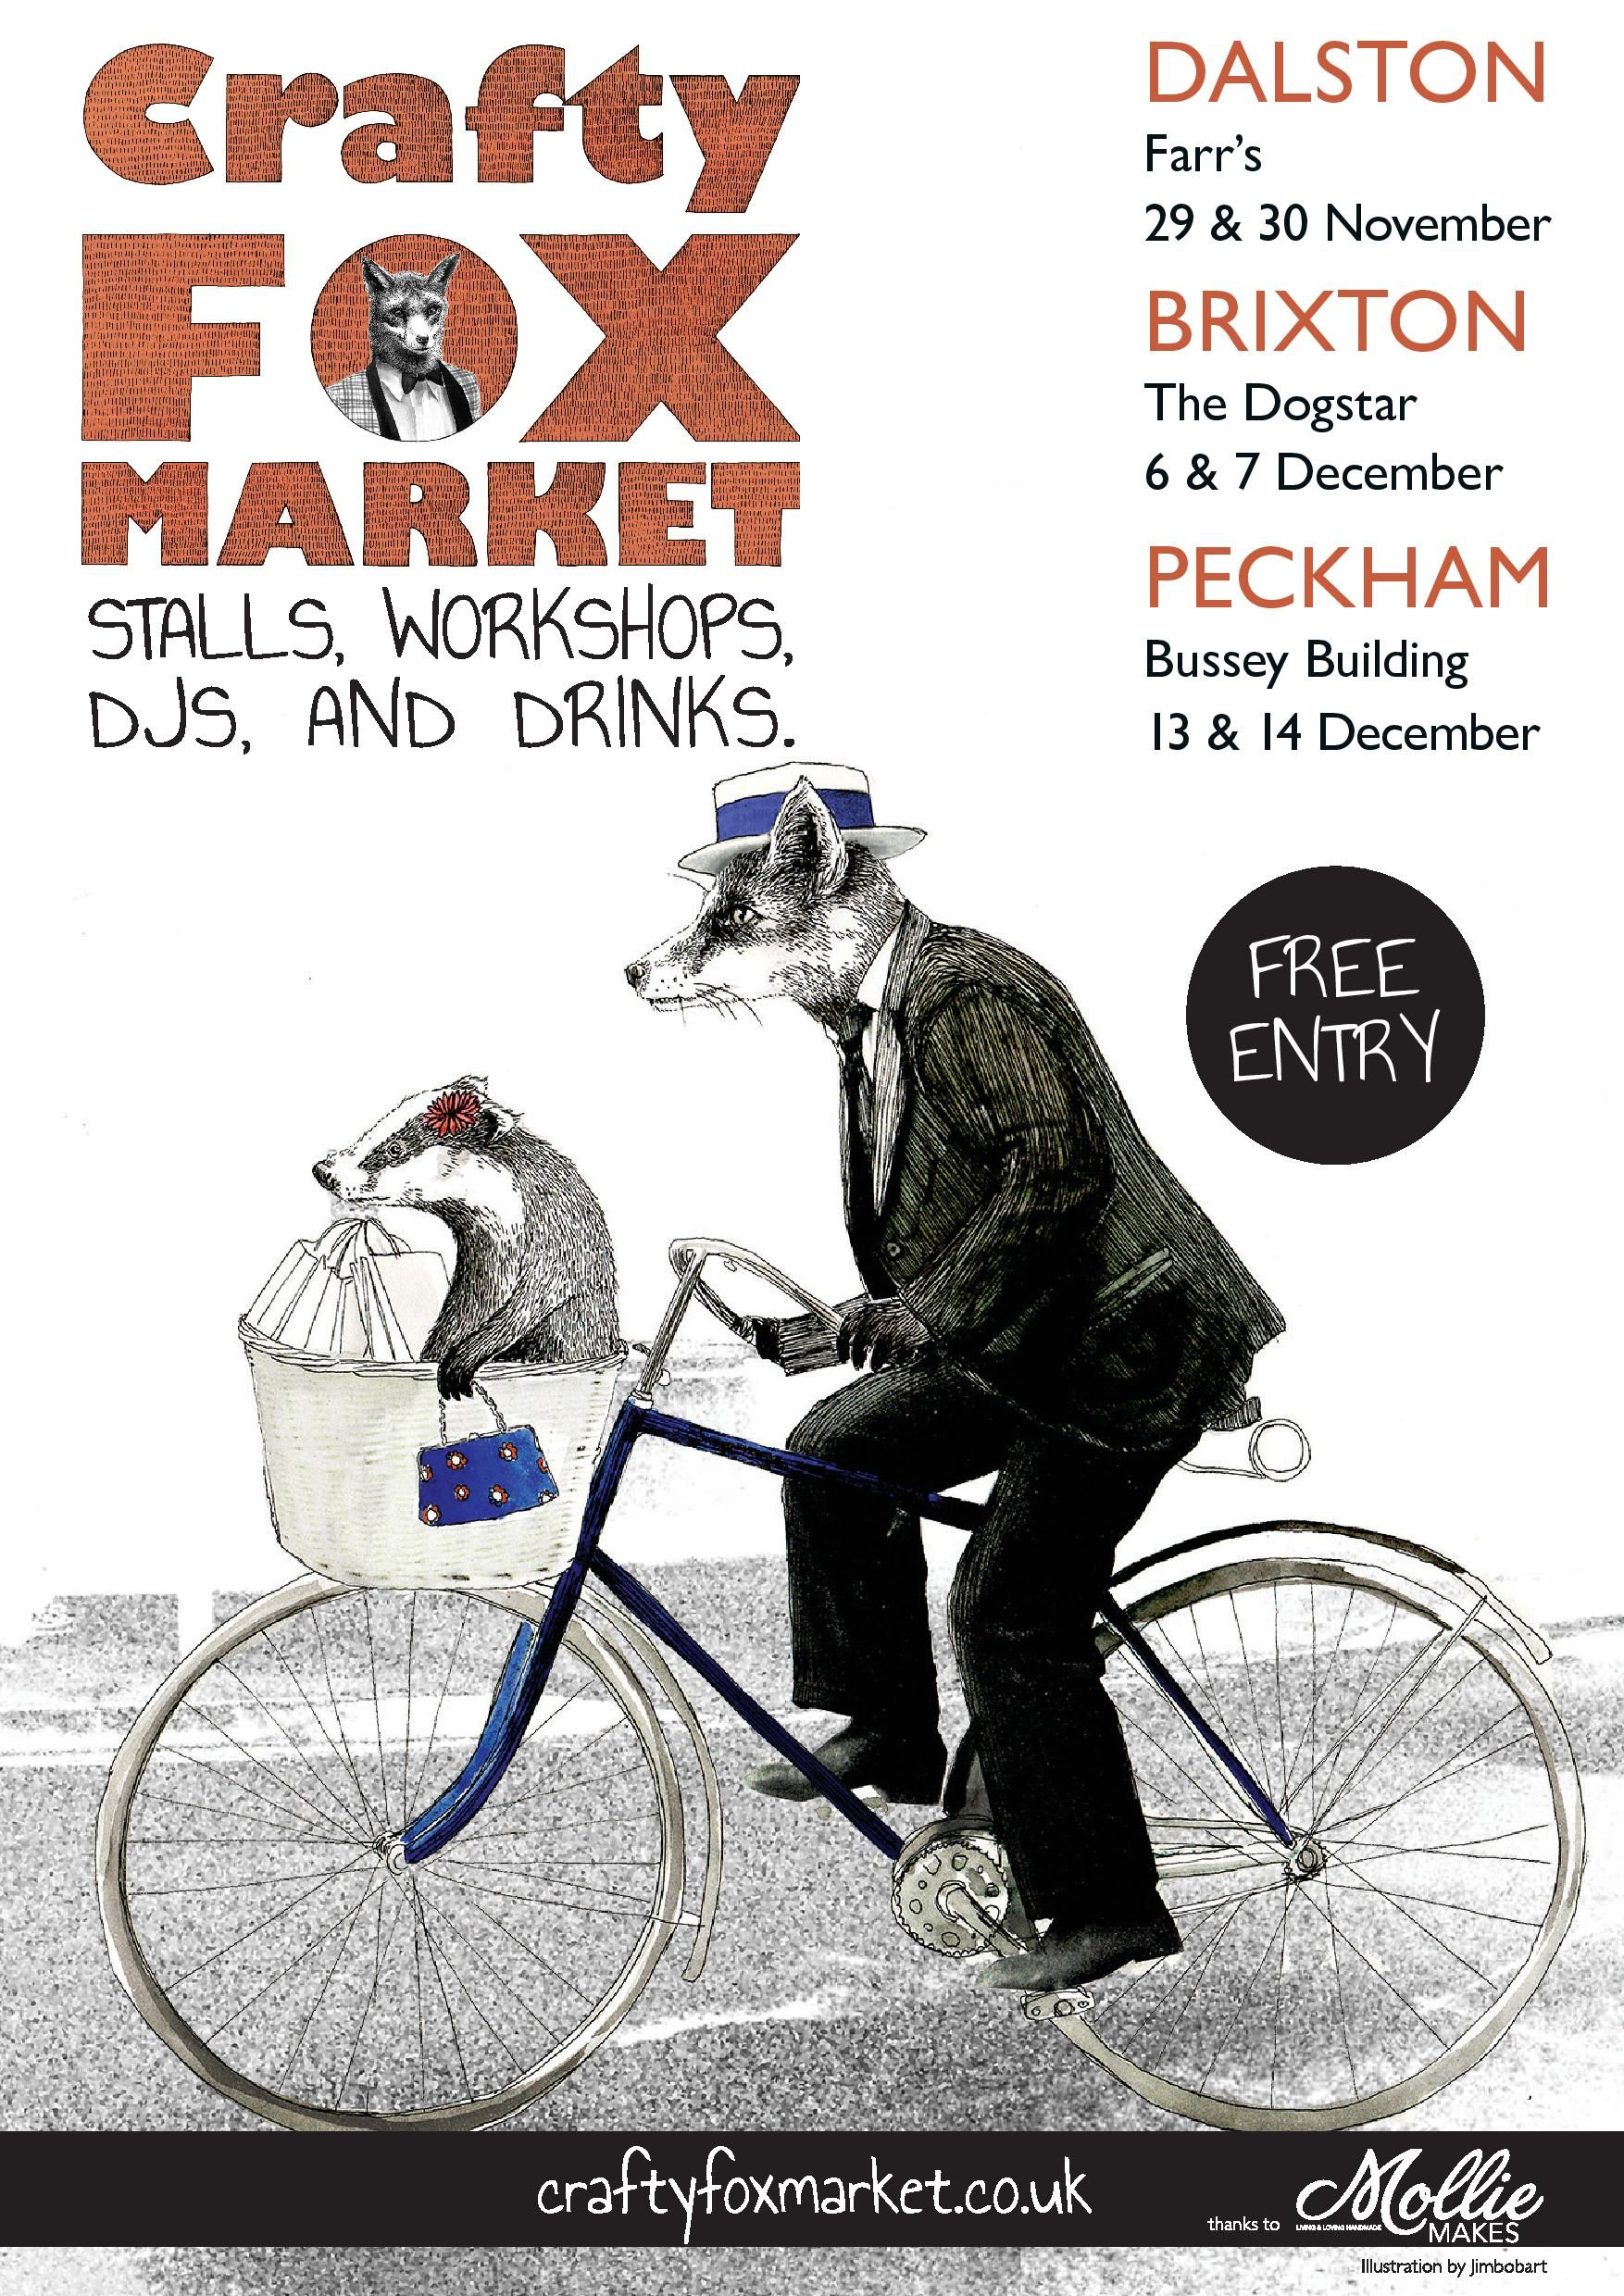 I'll be displaying my creatures at the Crafty Fox Market in the Bussey Building in Peckham on the 14th!!